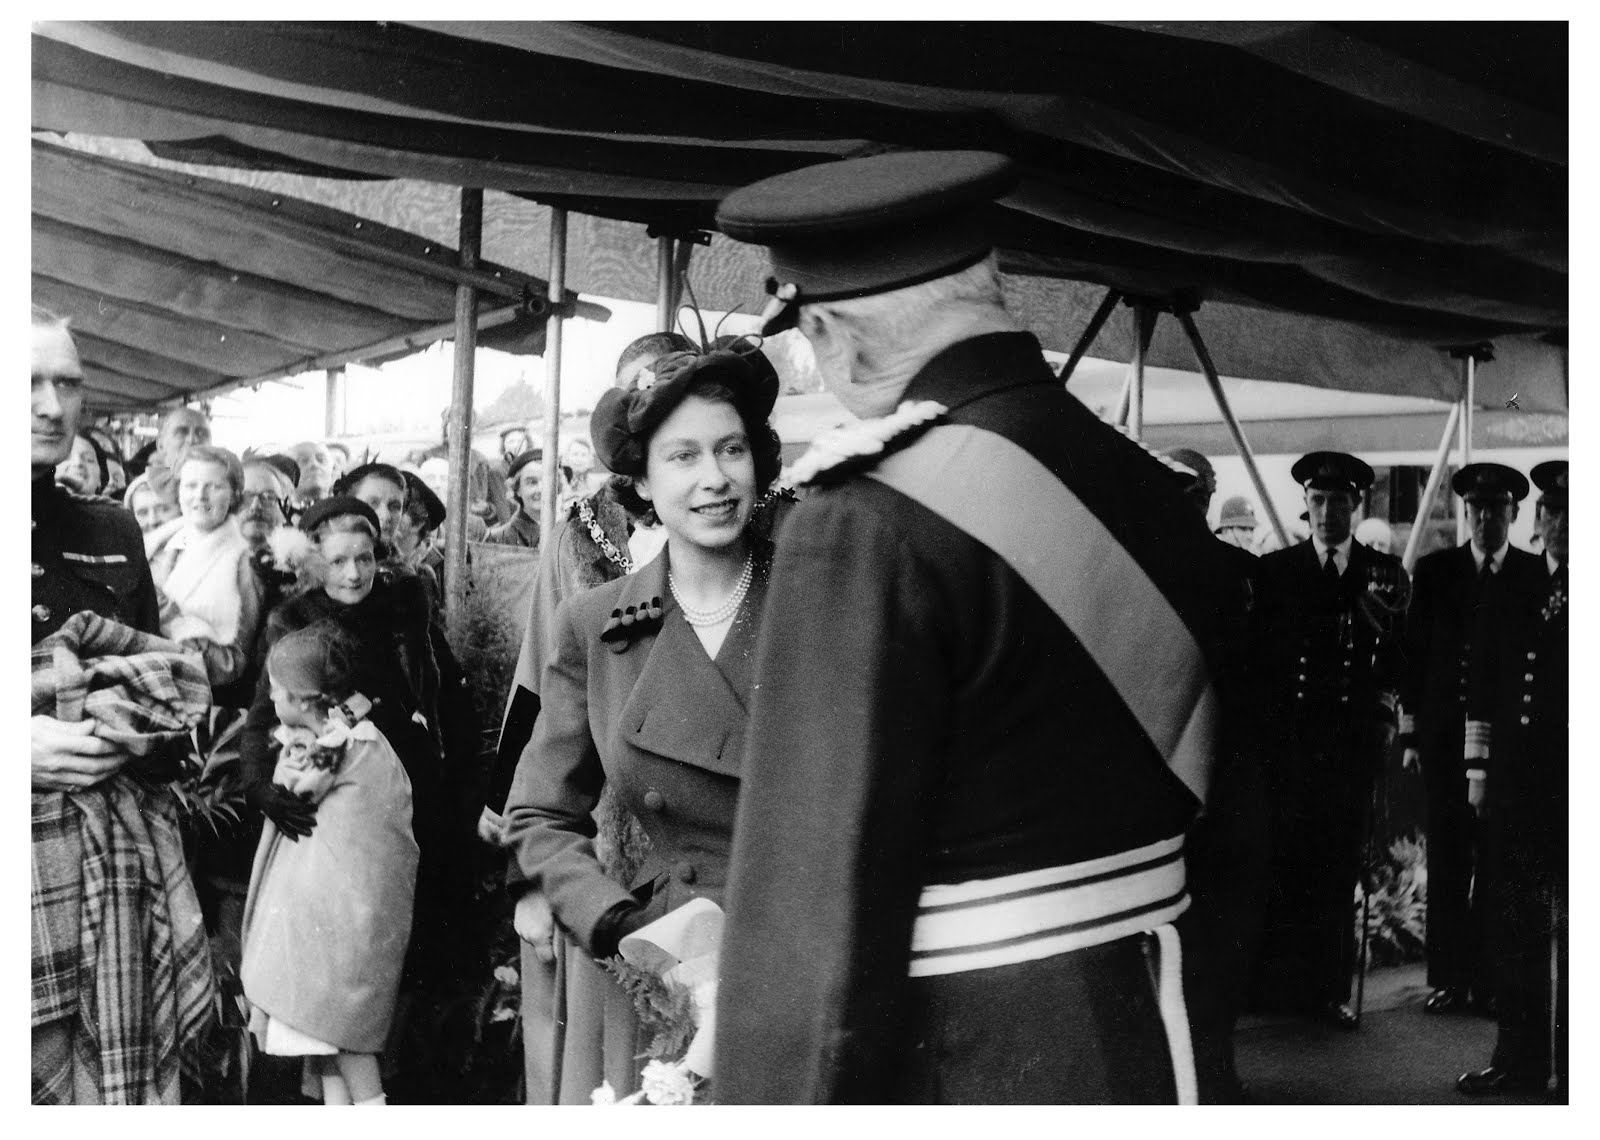 The Queen at Fort Brockhurst 1952